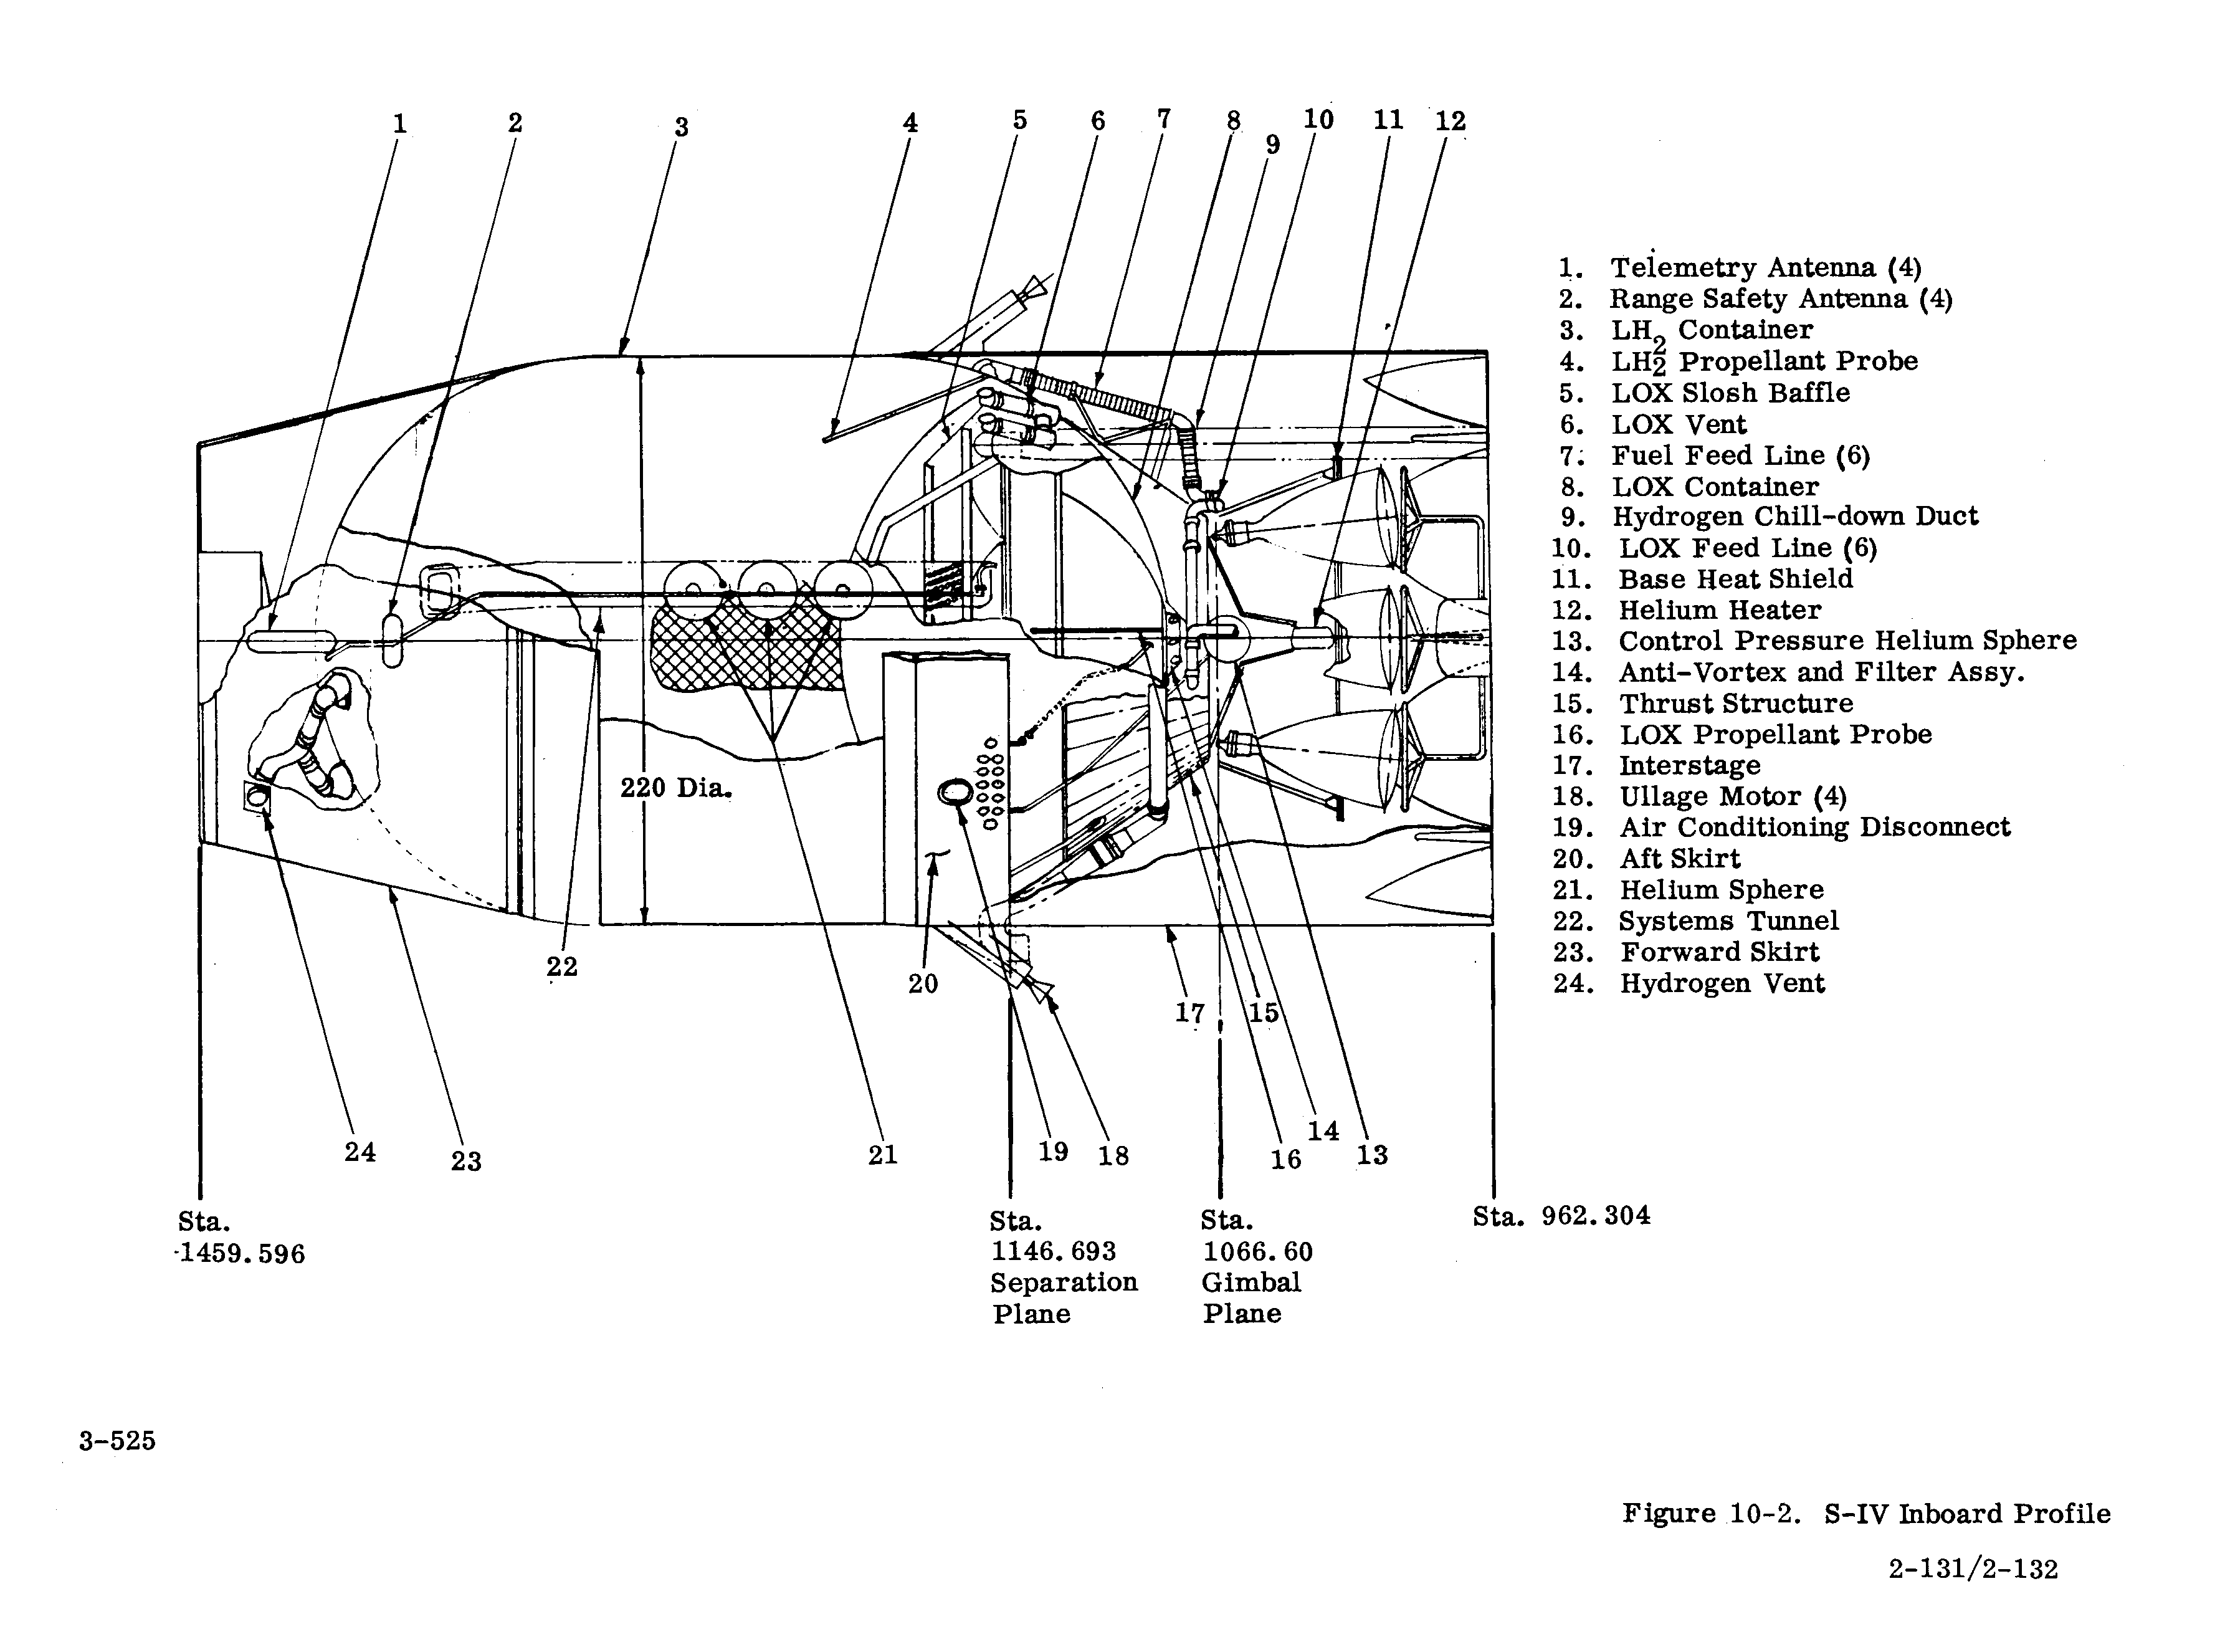 saturn launch vehicle information To One Switch Wiring Diagram 4 Lights s iv stage inboard diagram 1963